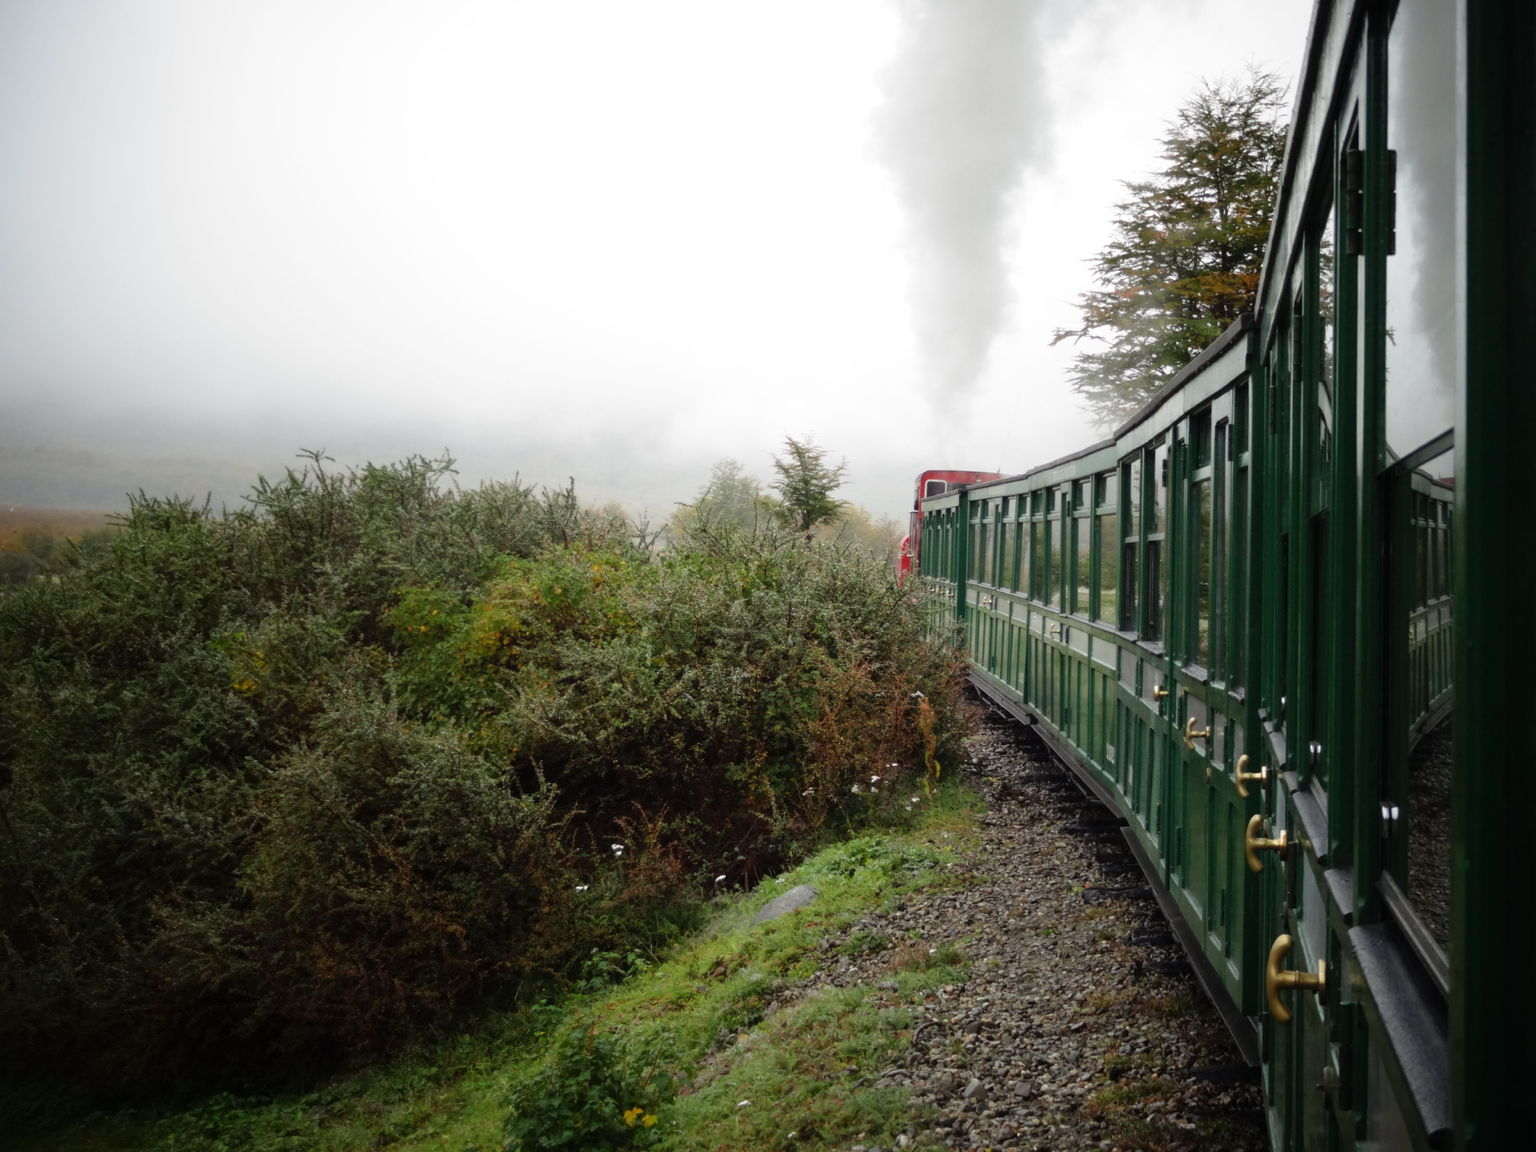 Tierra del Fuego National Park Half-Day Tour with Optional End of the World Train Ride